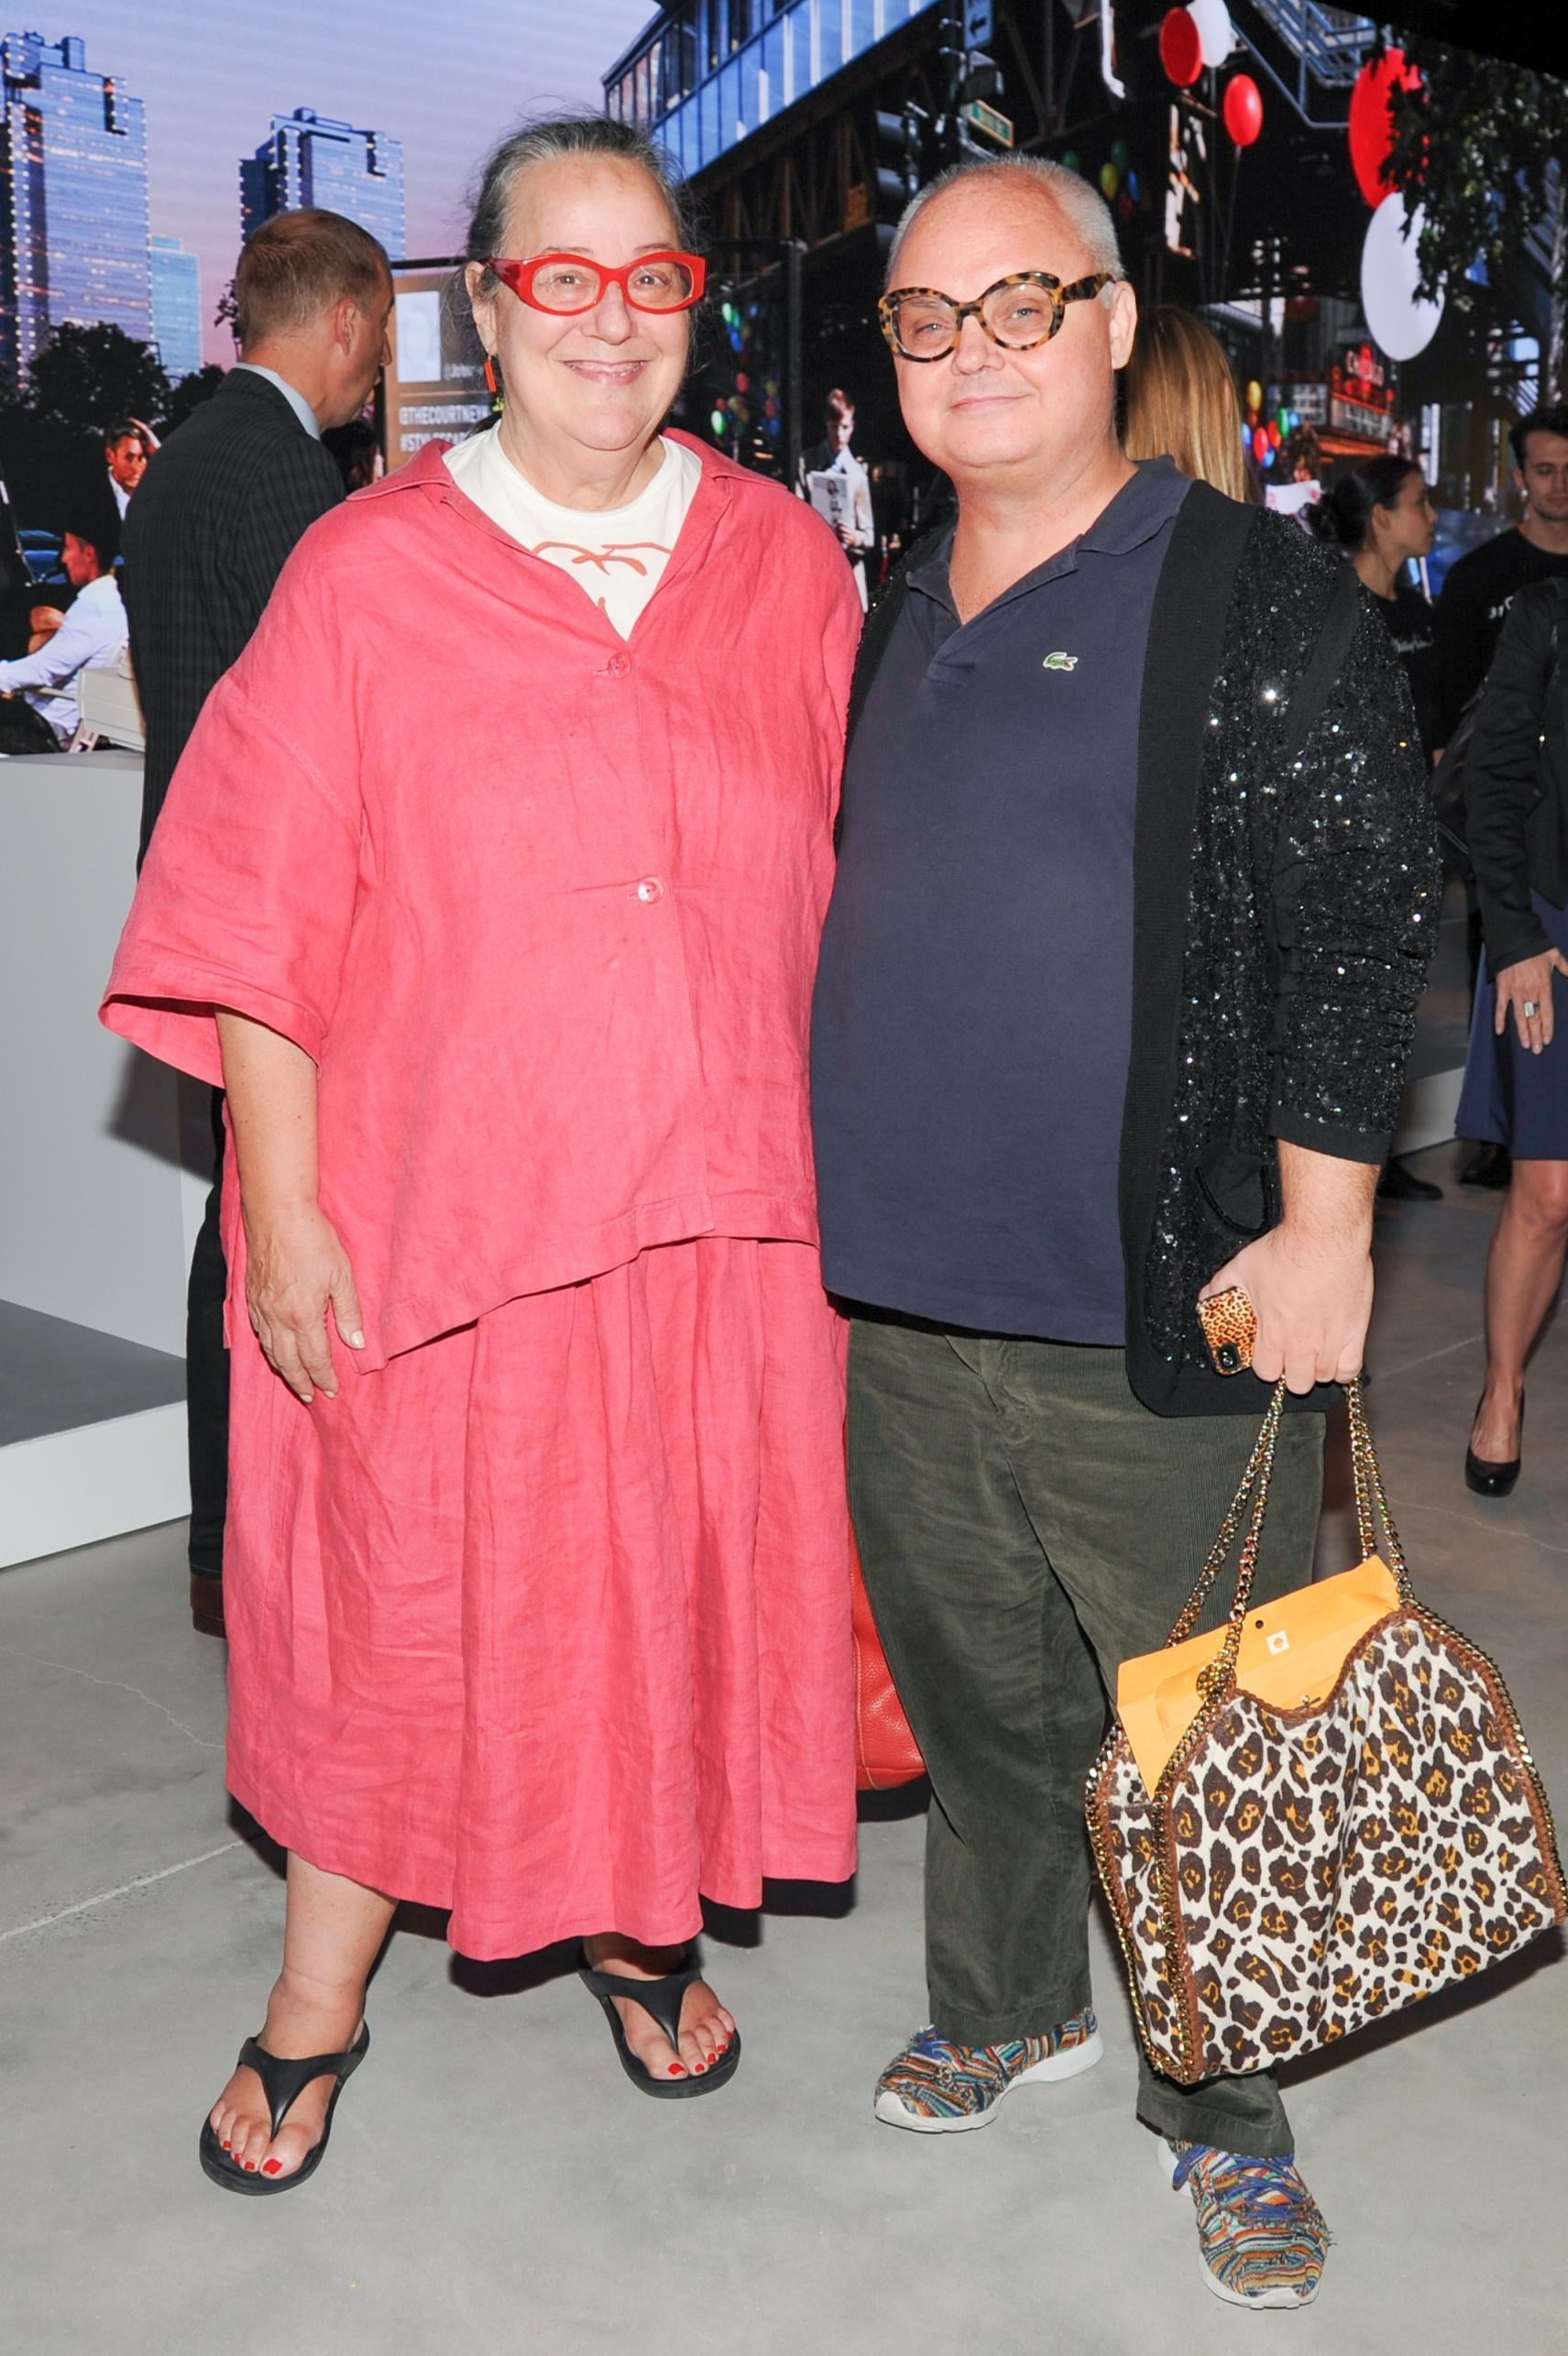 Paper magazine editors Kim Hastreiter and Mickey Boardman joined in on the fun.